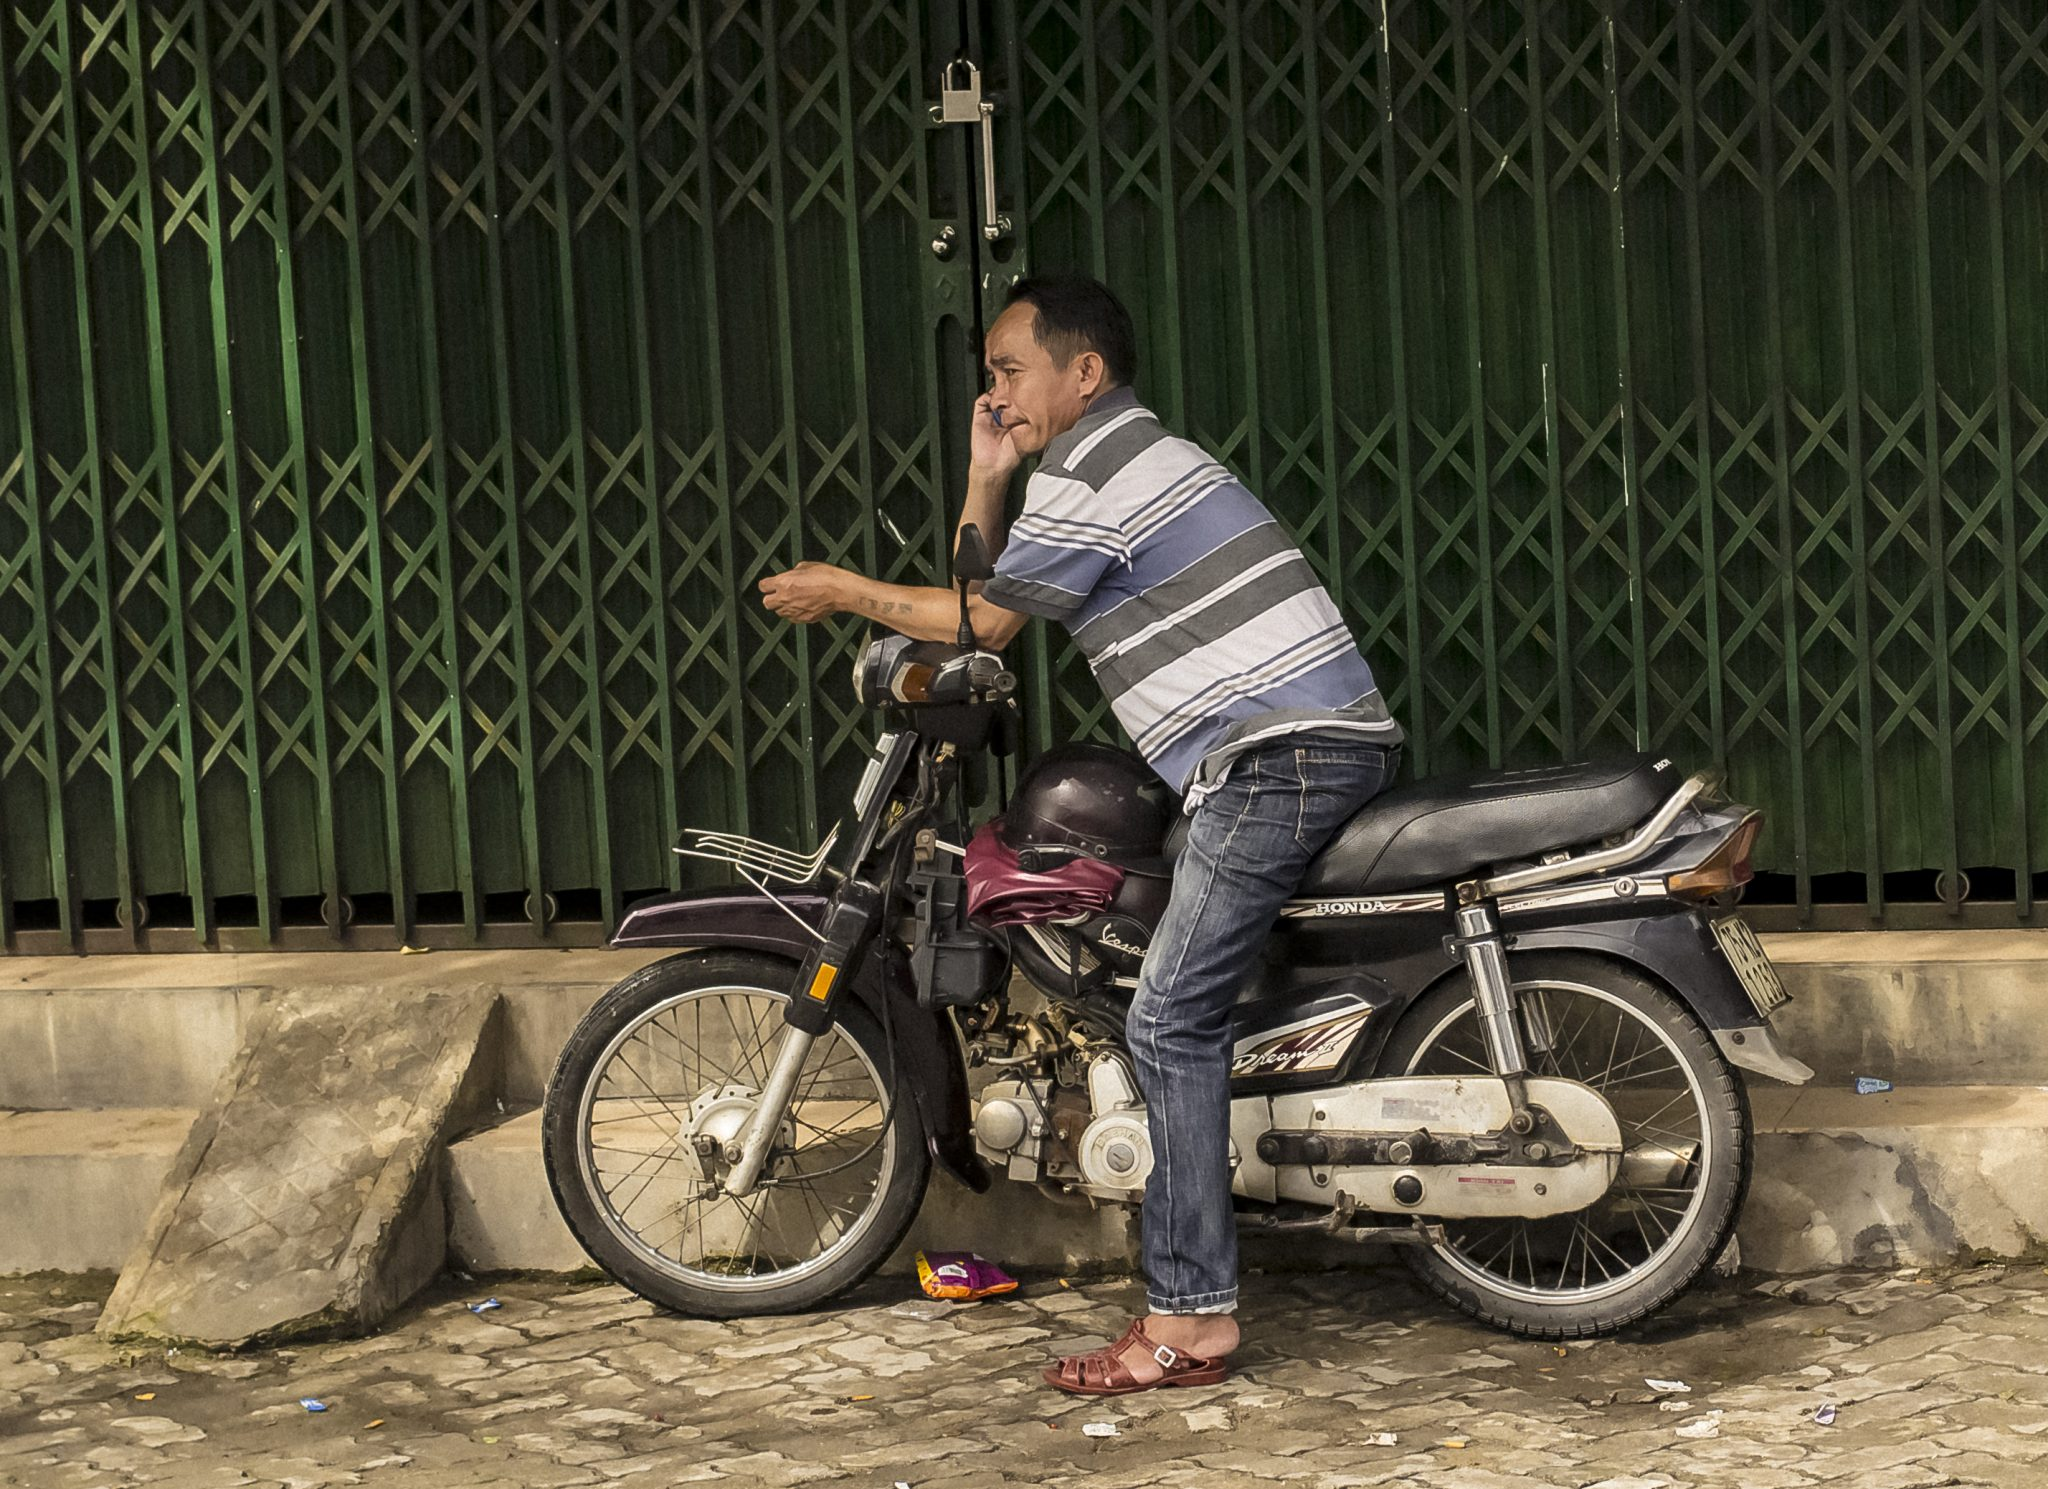 How to understand an American teacher riding a motorbike in Ho Chi Minh City, Vietnam